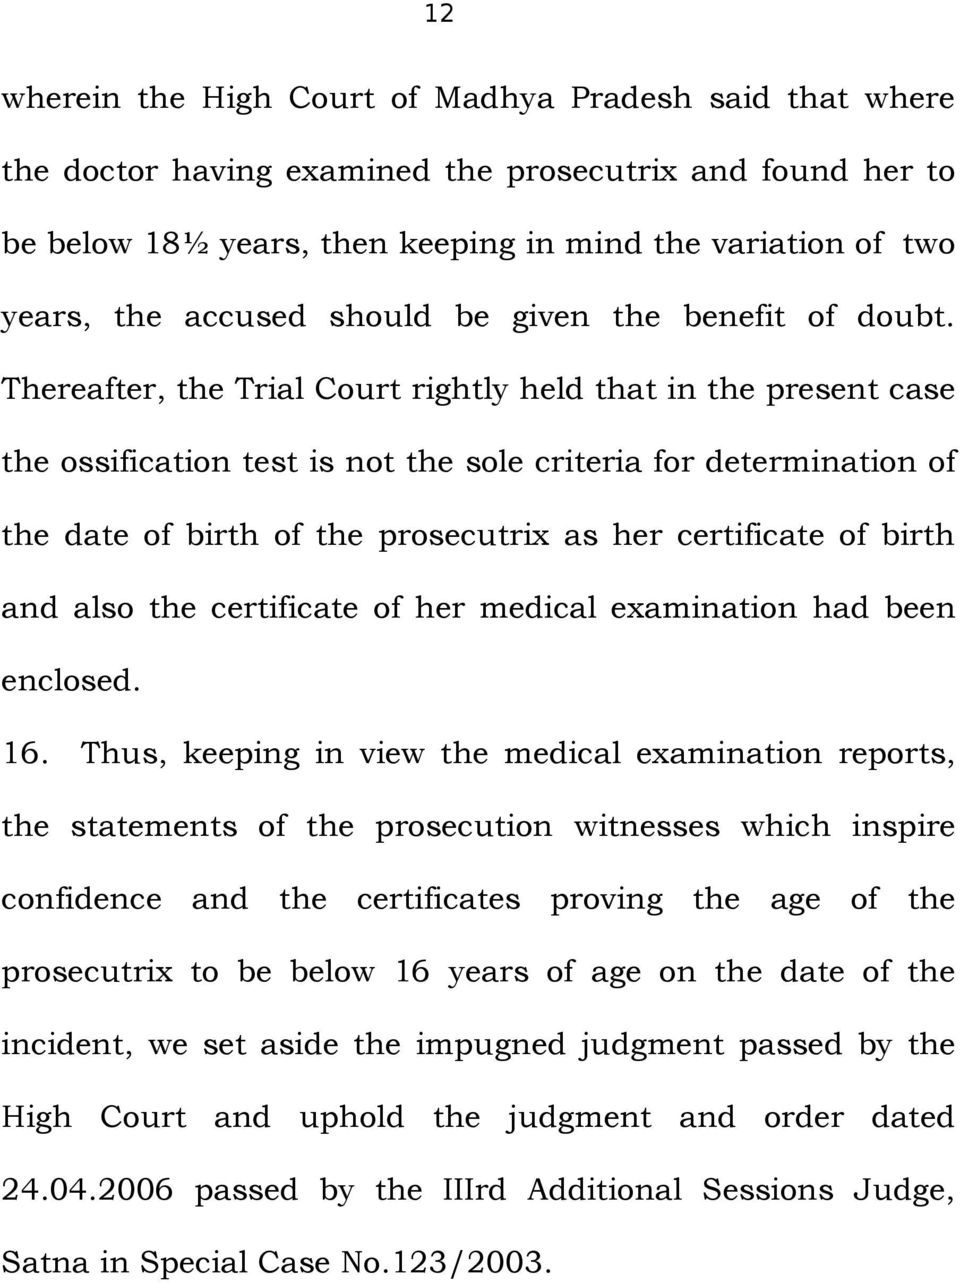 Thereafter, the Trial Court rightly held that in the present case the ossification test is not the sole criteria for determination of the date of birth of the prosecutrix as her certificate of birth